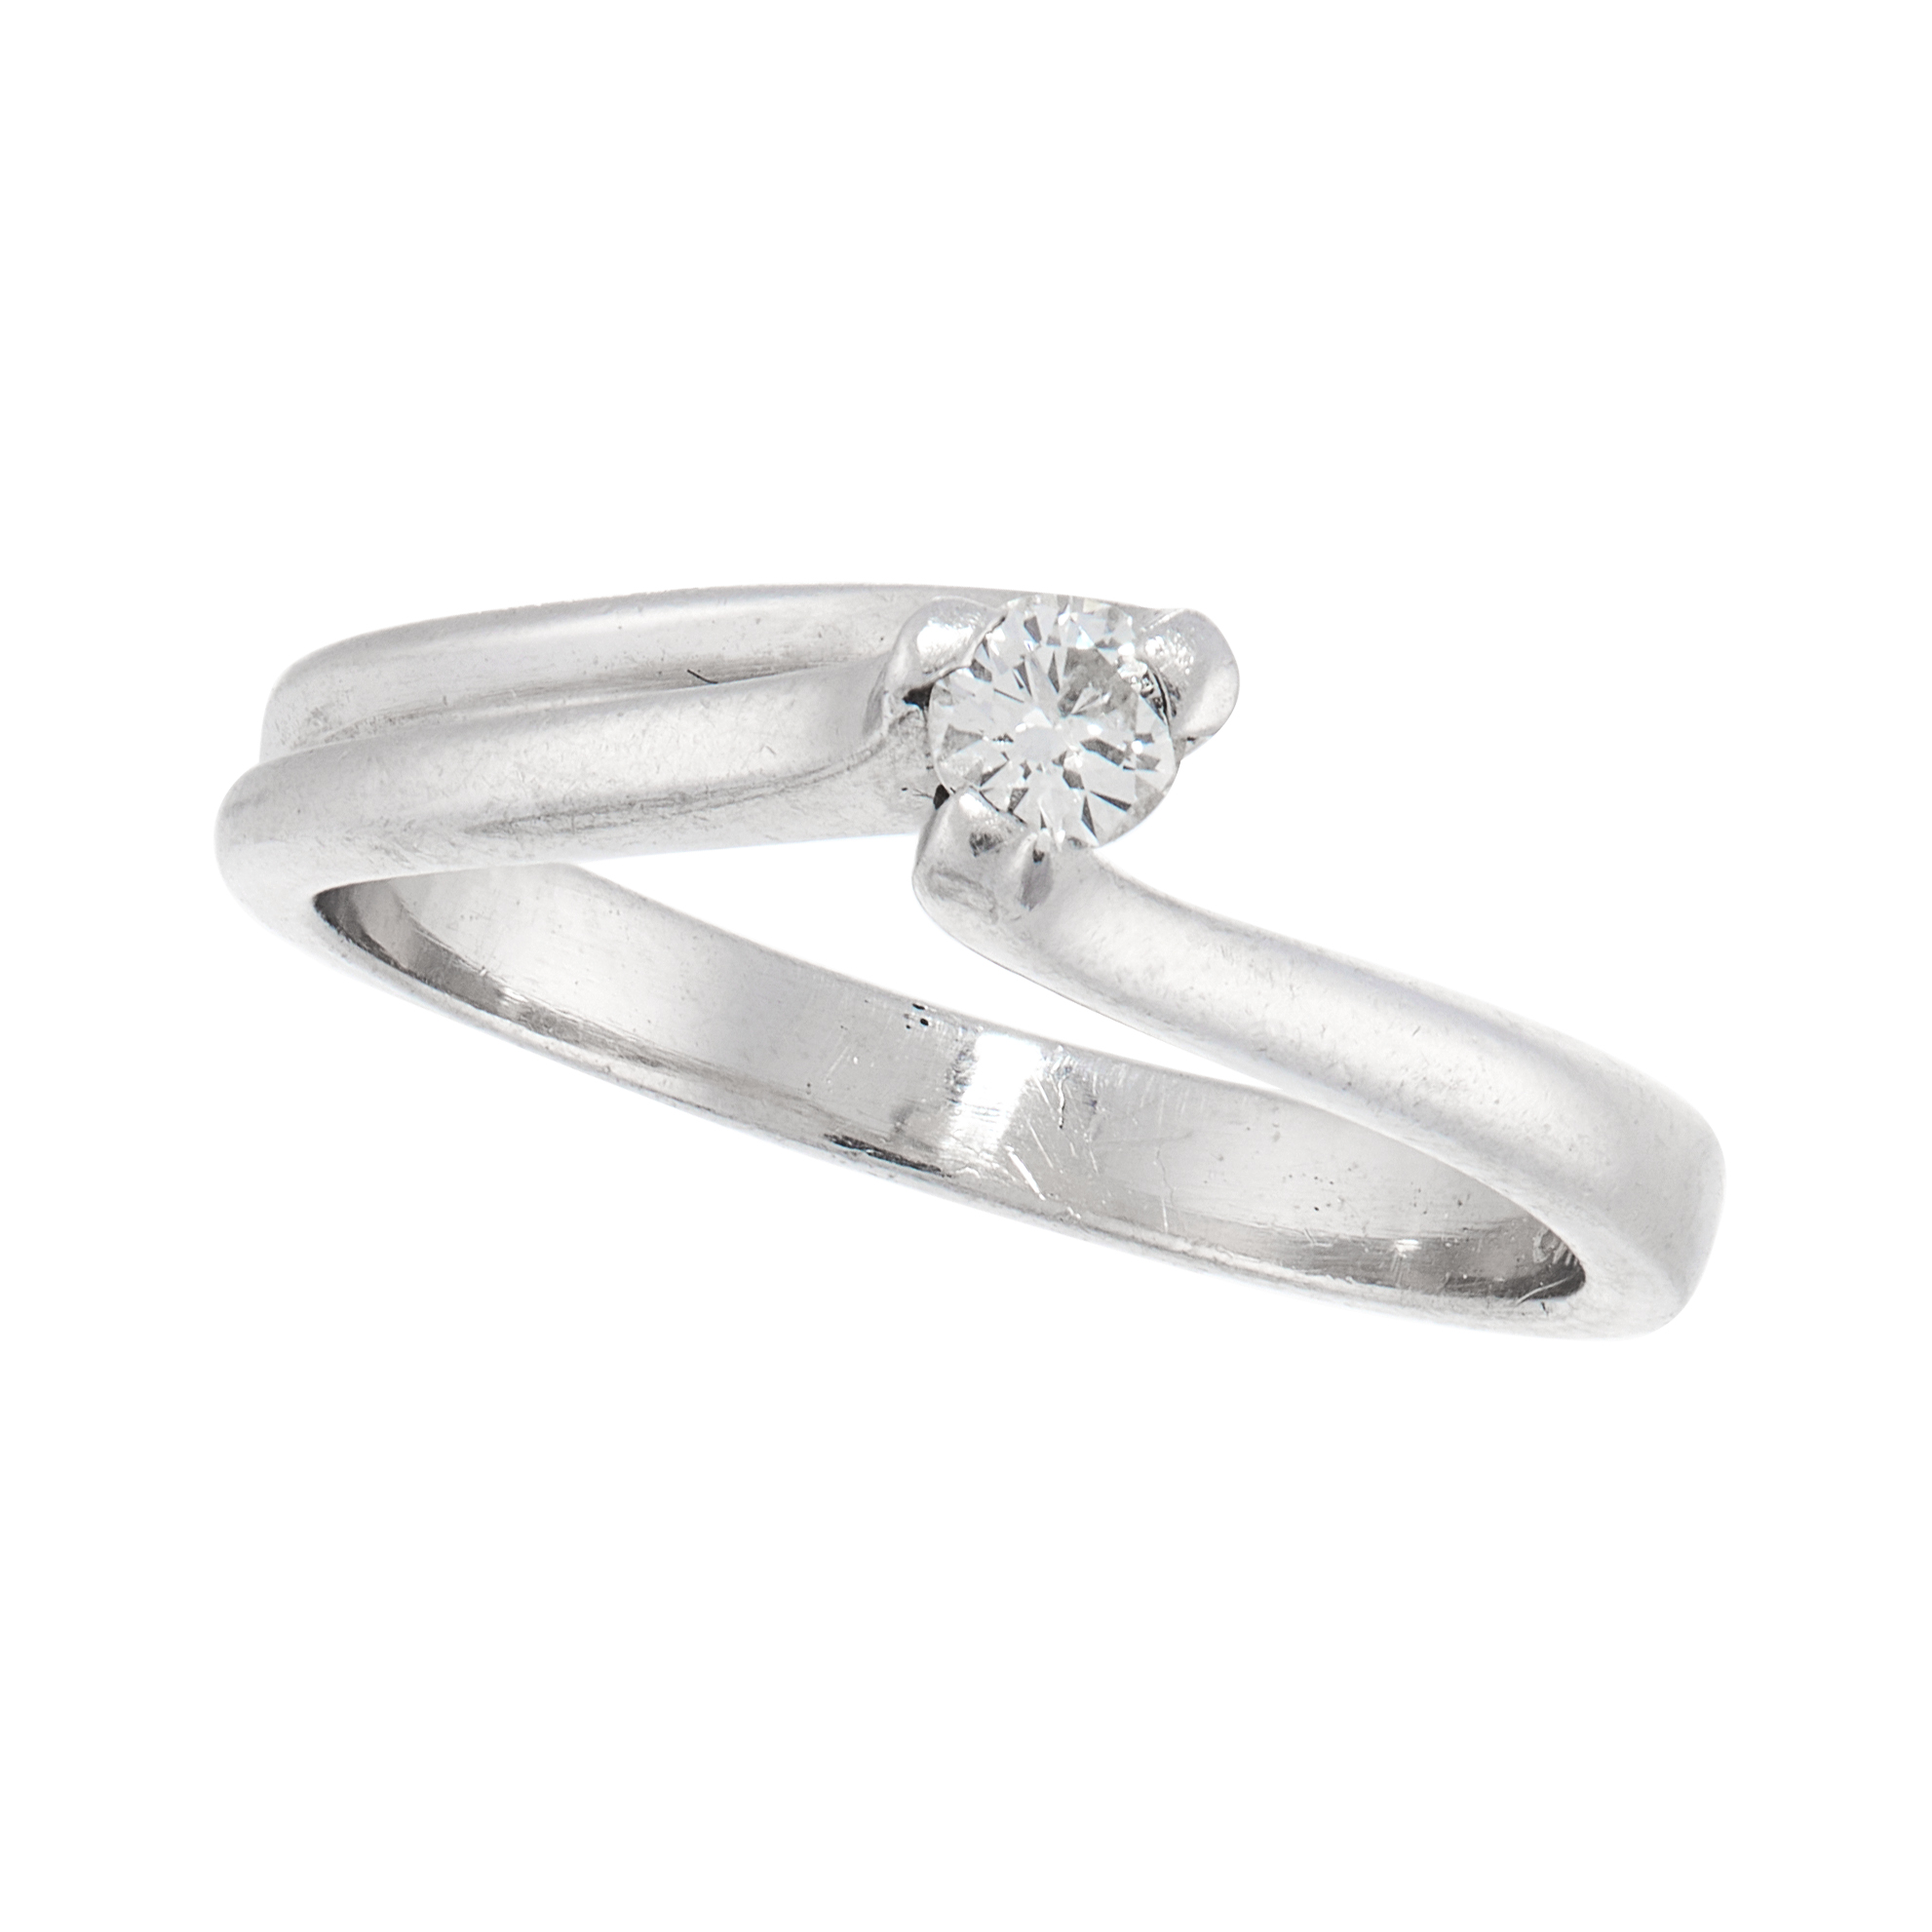 A SOLITAIRE DIAMOND DRESS RING in platinum, set with a round cut diamond within a stylised twisted